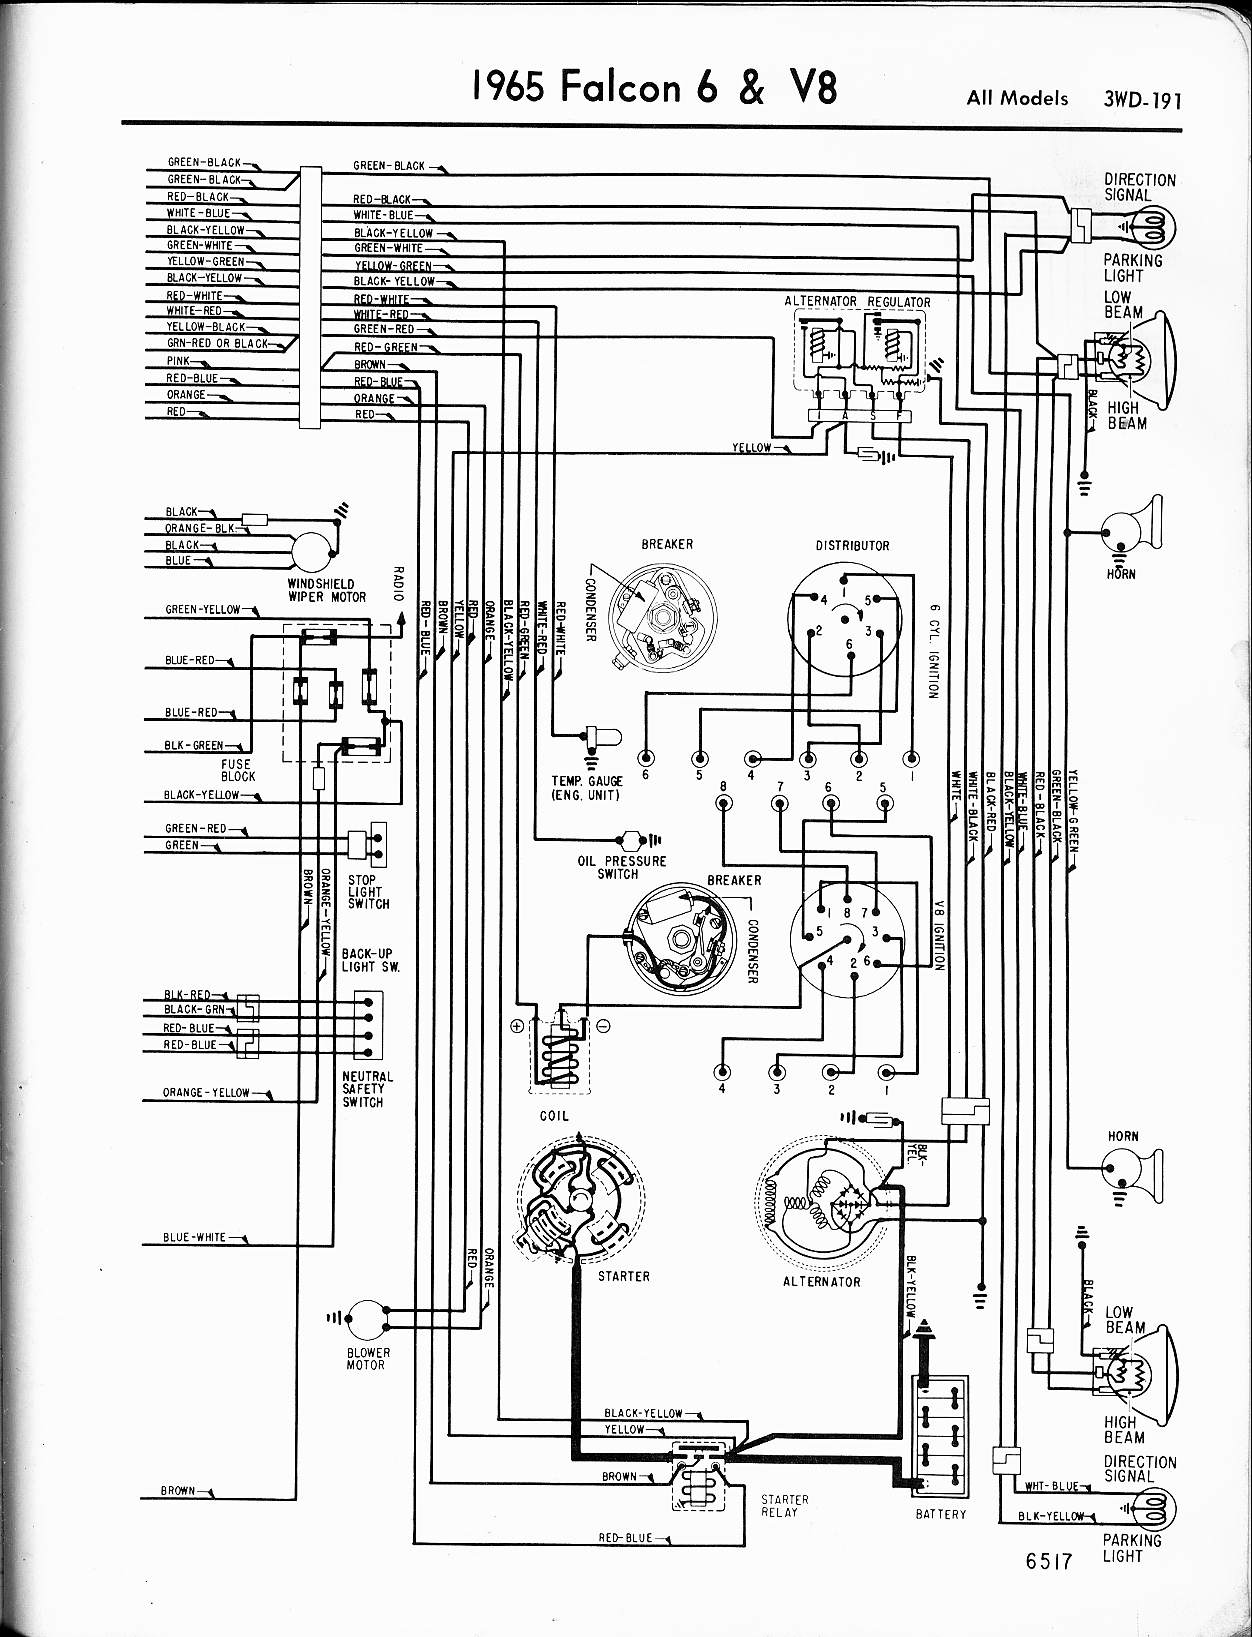 1964 fairlane wiring diagram manual 10 dce capecoral57 65 ford wiring diagrams rh oldcarmanualproject com 1964 mustang wiring diagram 1964 fairlane wiring diagram manual